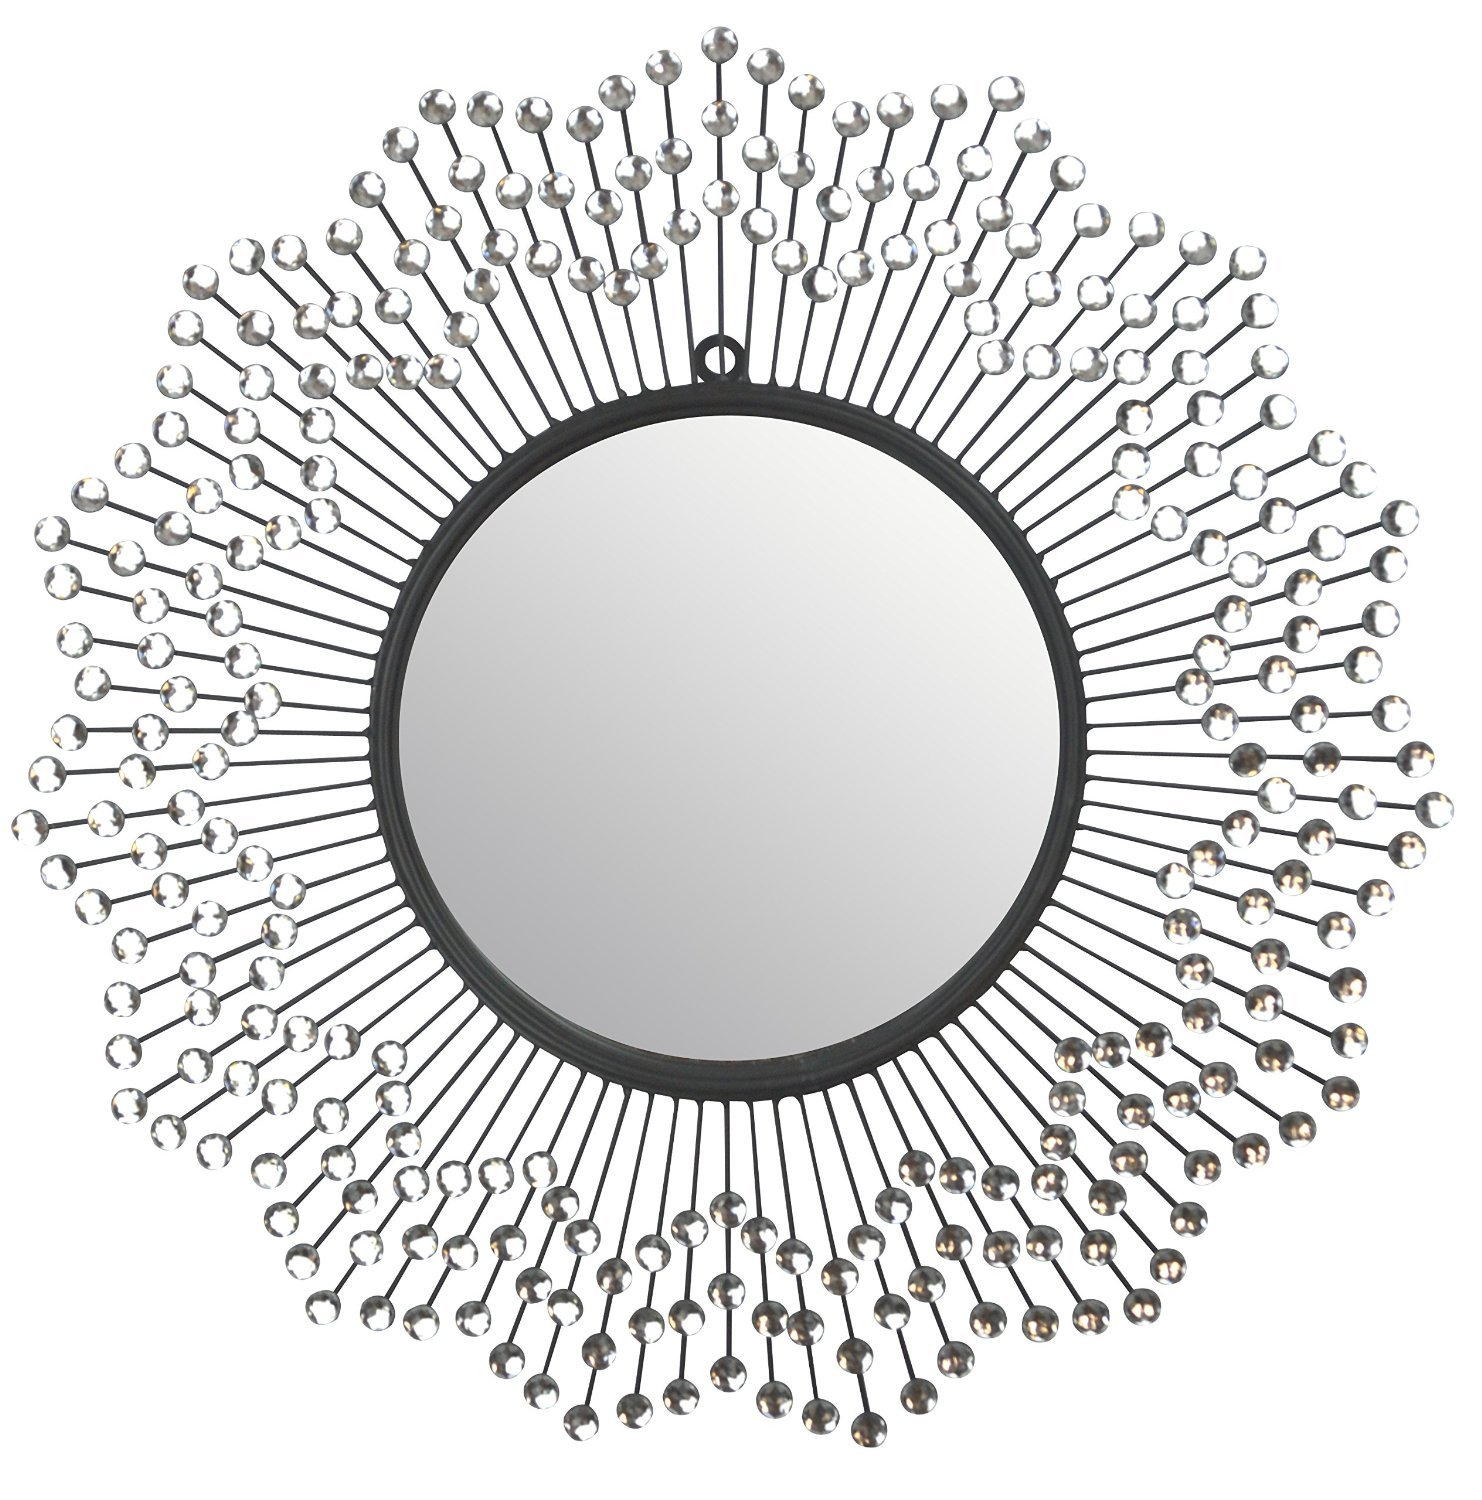 mirror. Amazon.com: Lulu Décor, Celebration Metal Wall Mirror, Frame 24\u201d, Round Decorative Mirror For Living Room And Office Space: Home \u0026 Kitchen